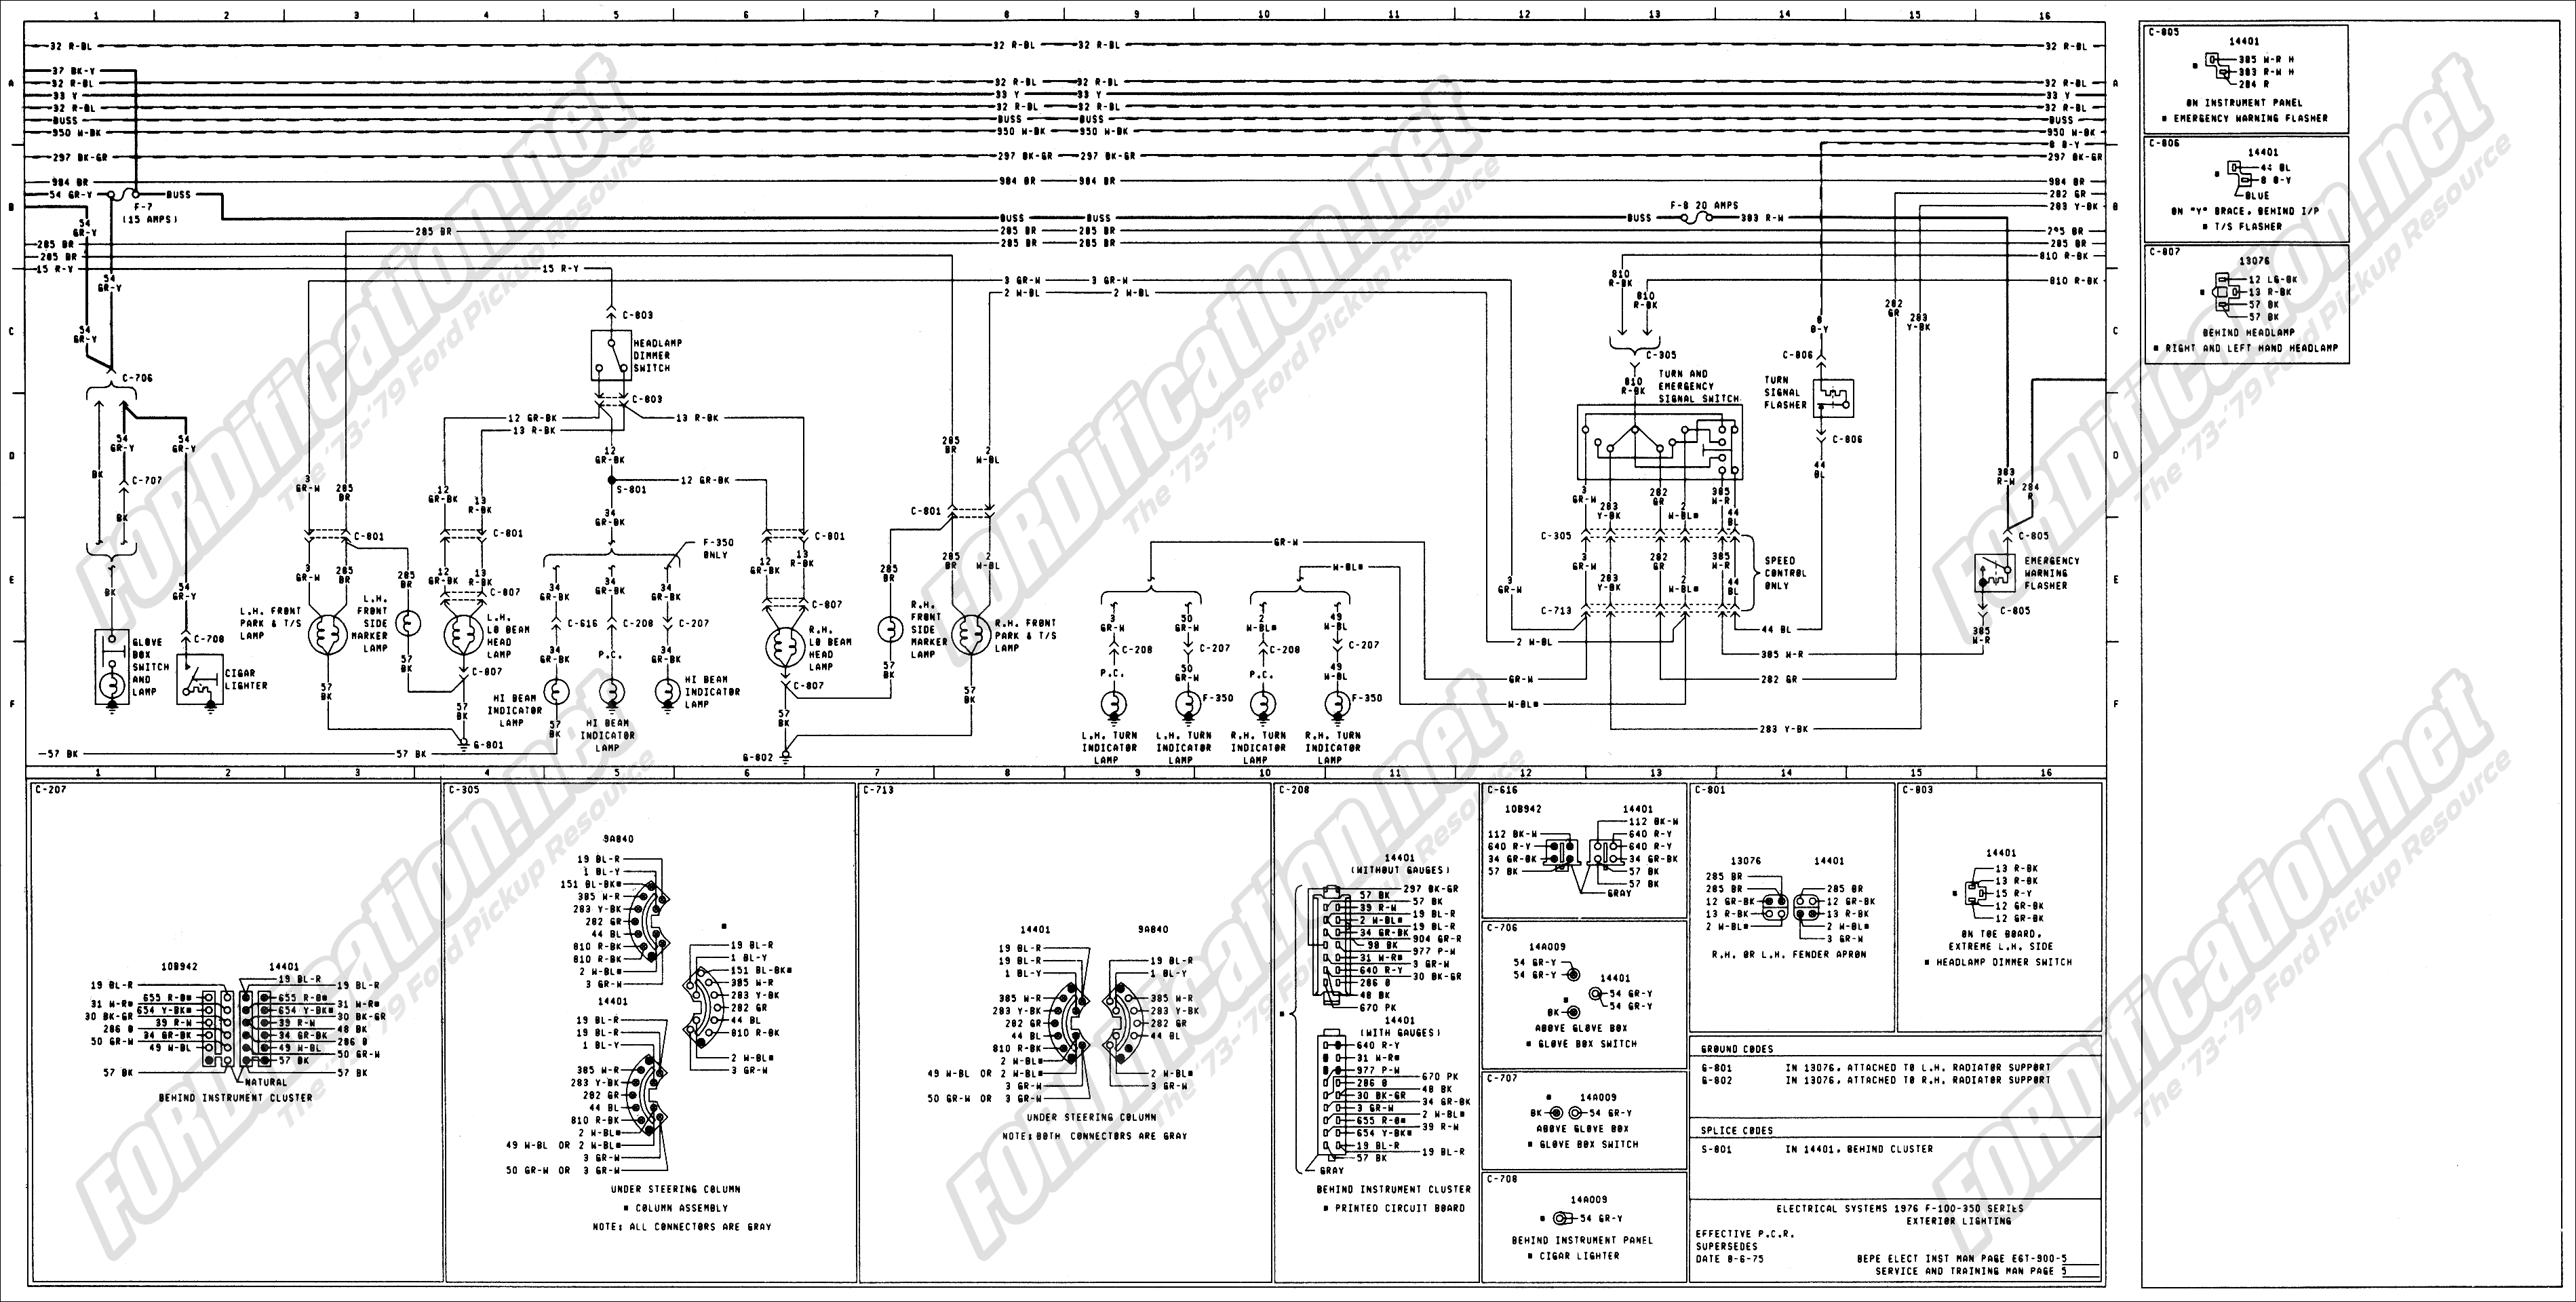 1960 Ford F100 Fuse Box Location Circuit Wiring And Diagram Hub 2011 Fusion 1962 Enthusiast Diagrams U2022 Rh Rasalibre Co 2004 Focus